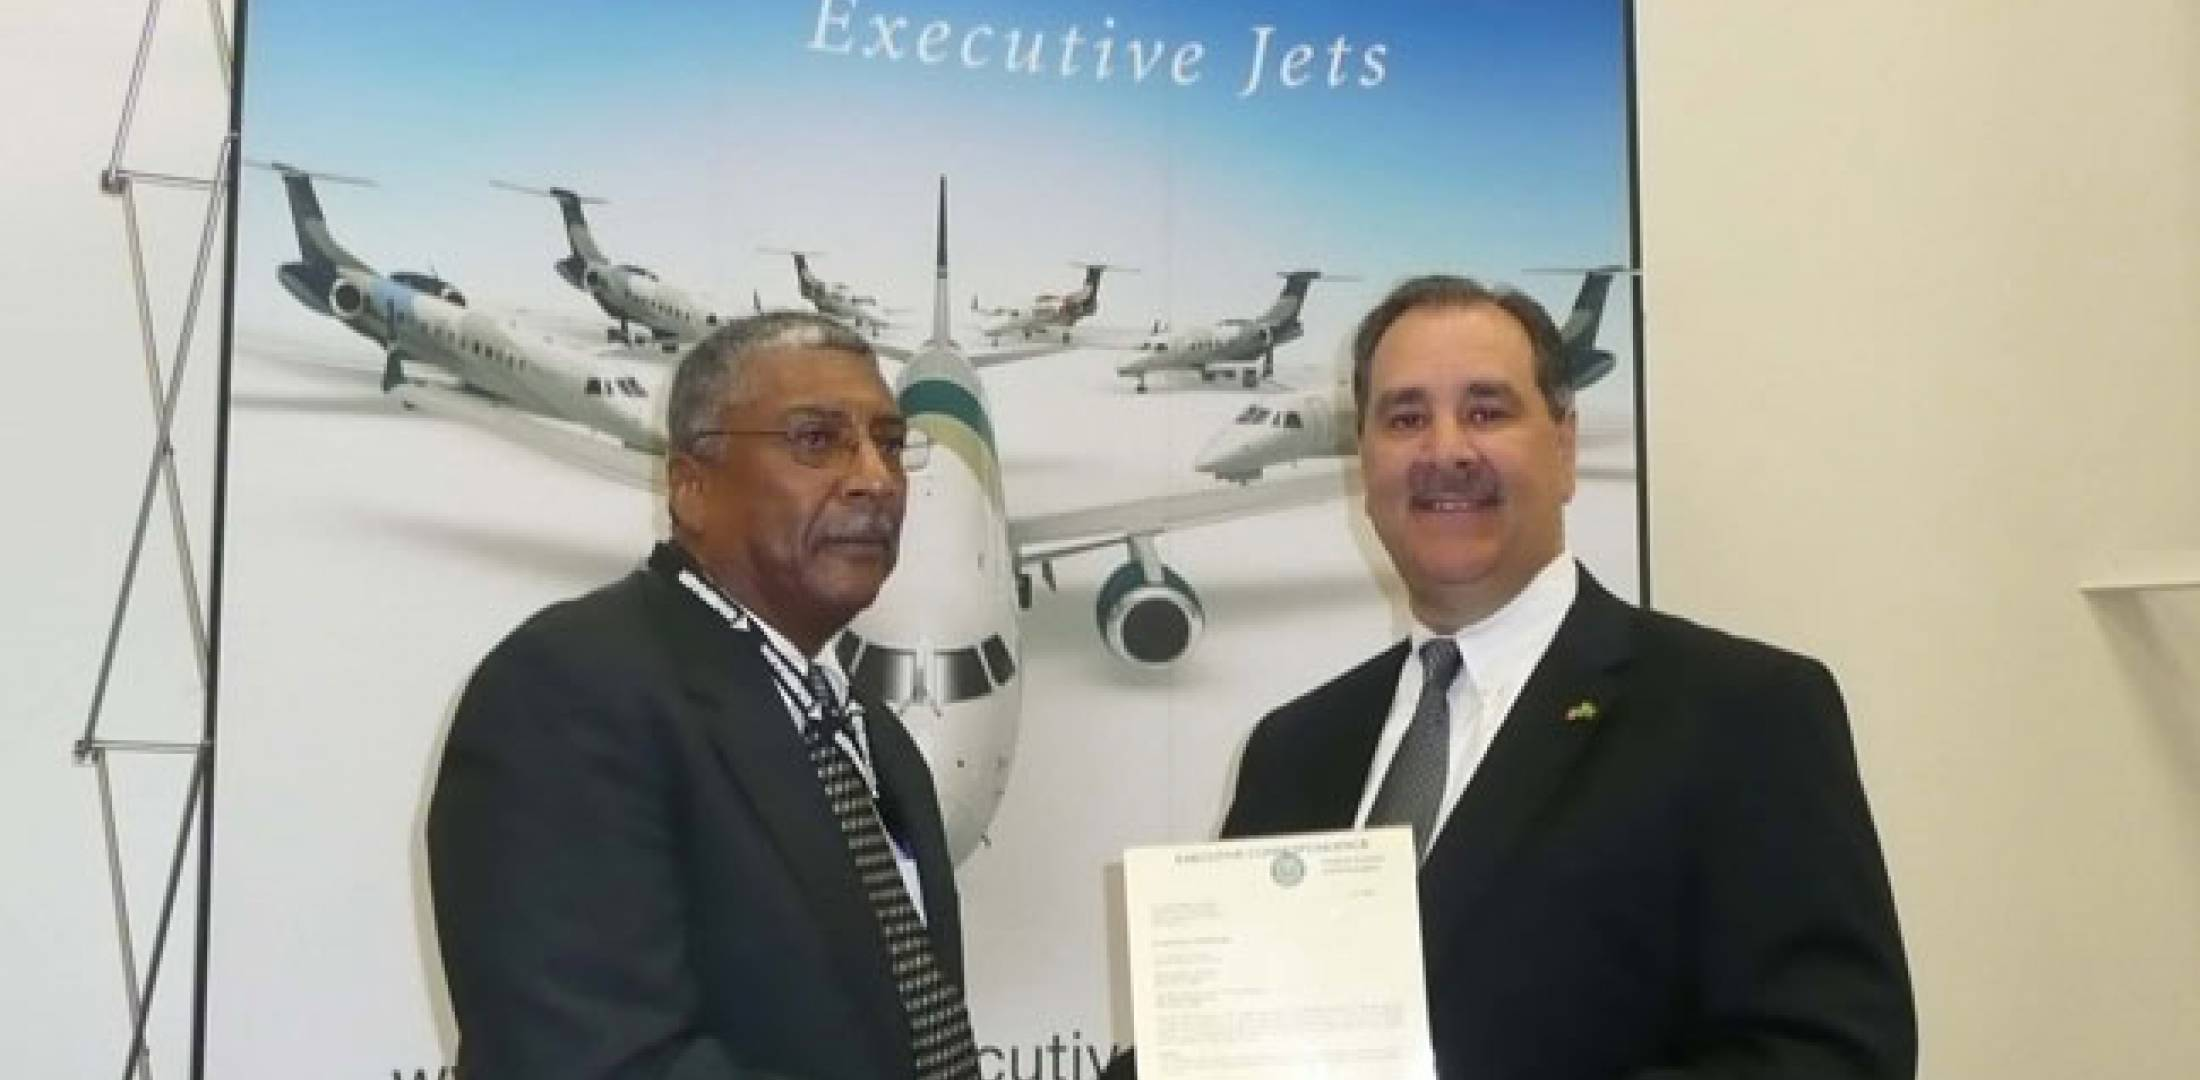 (L-R): Mack Riley, manager of the FAA's Orlando manufacturing inspection district office, hands the production certificate for Embraer's Melbourne Phenom 100 assembly line to Phil Krull, managing director of Melbourne production, during ceremonies on June 18